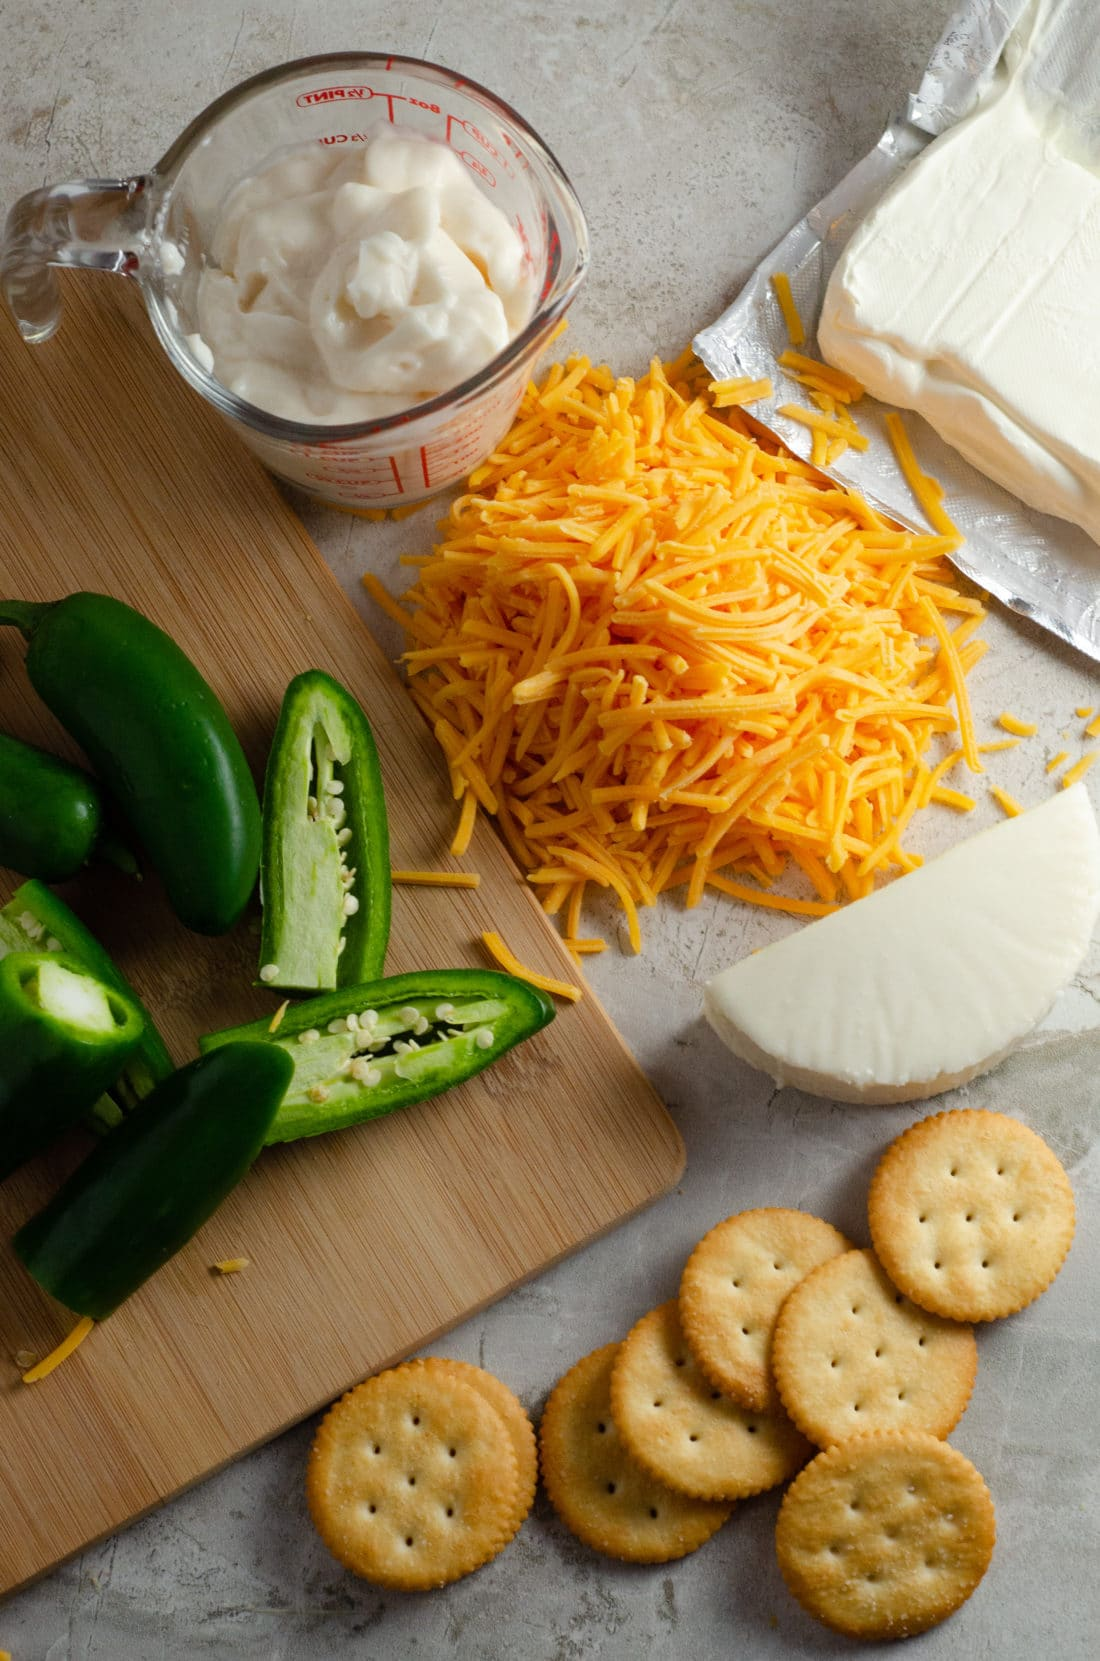 Jalapeño Popper Dip Ingredients. Elevate your holiday entertaining with some wholesome, flavorful California cheeses in this easy to make Jalapeño Popper Dip.